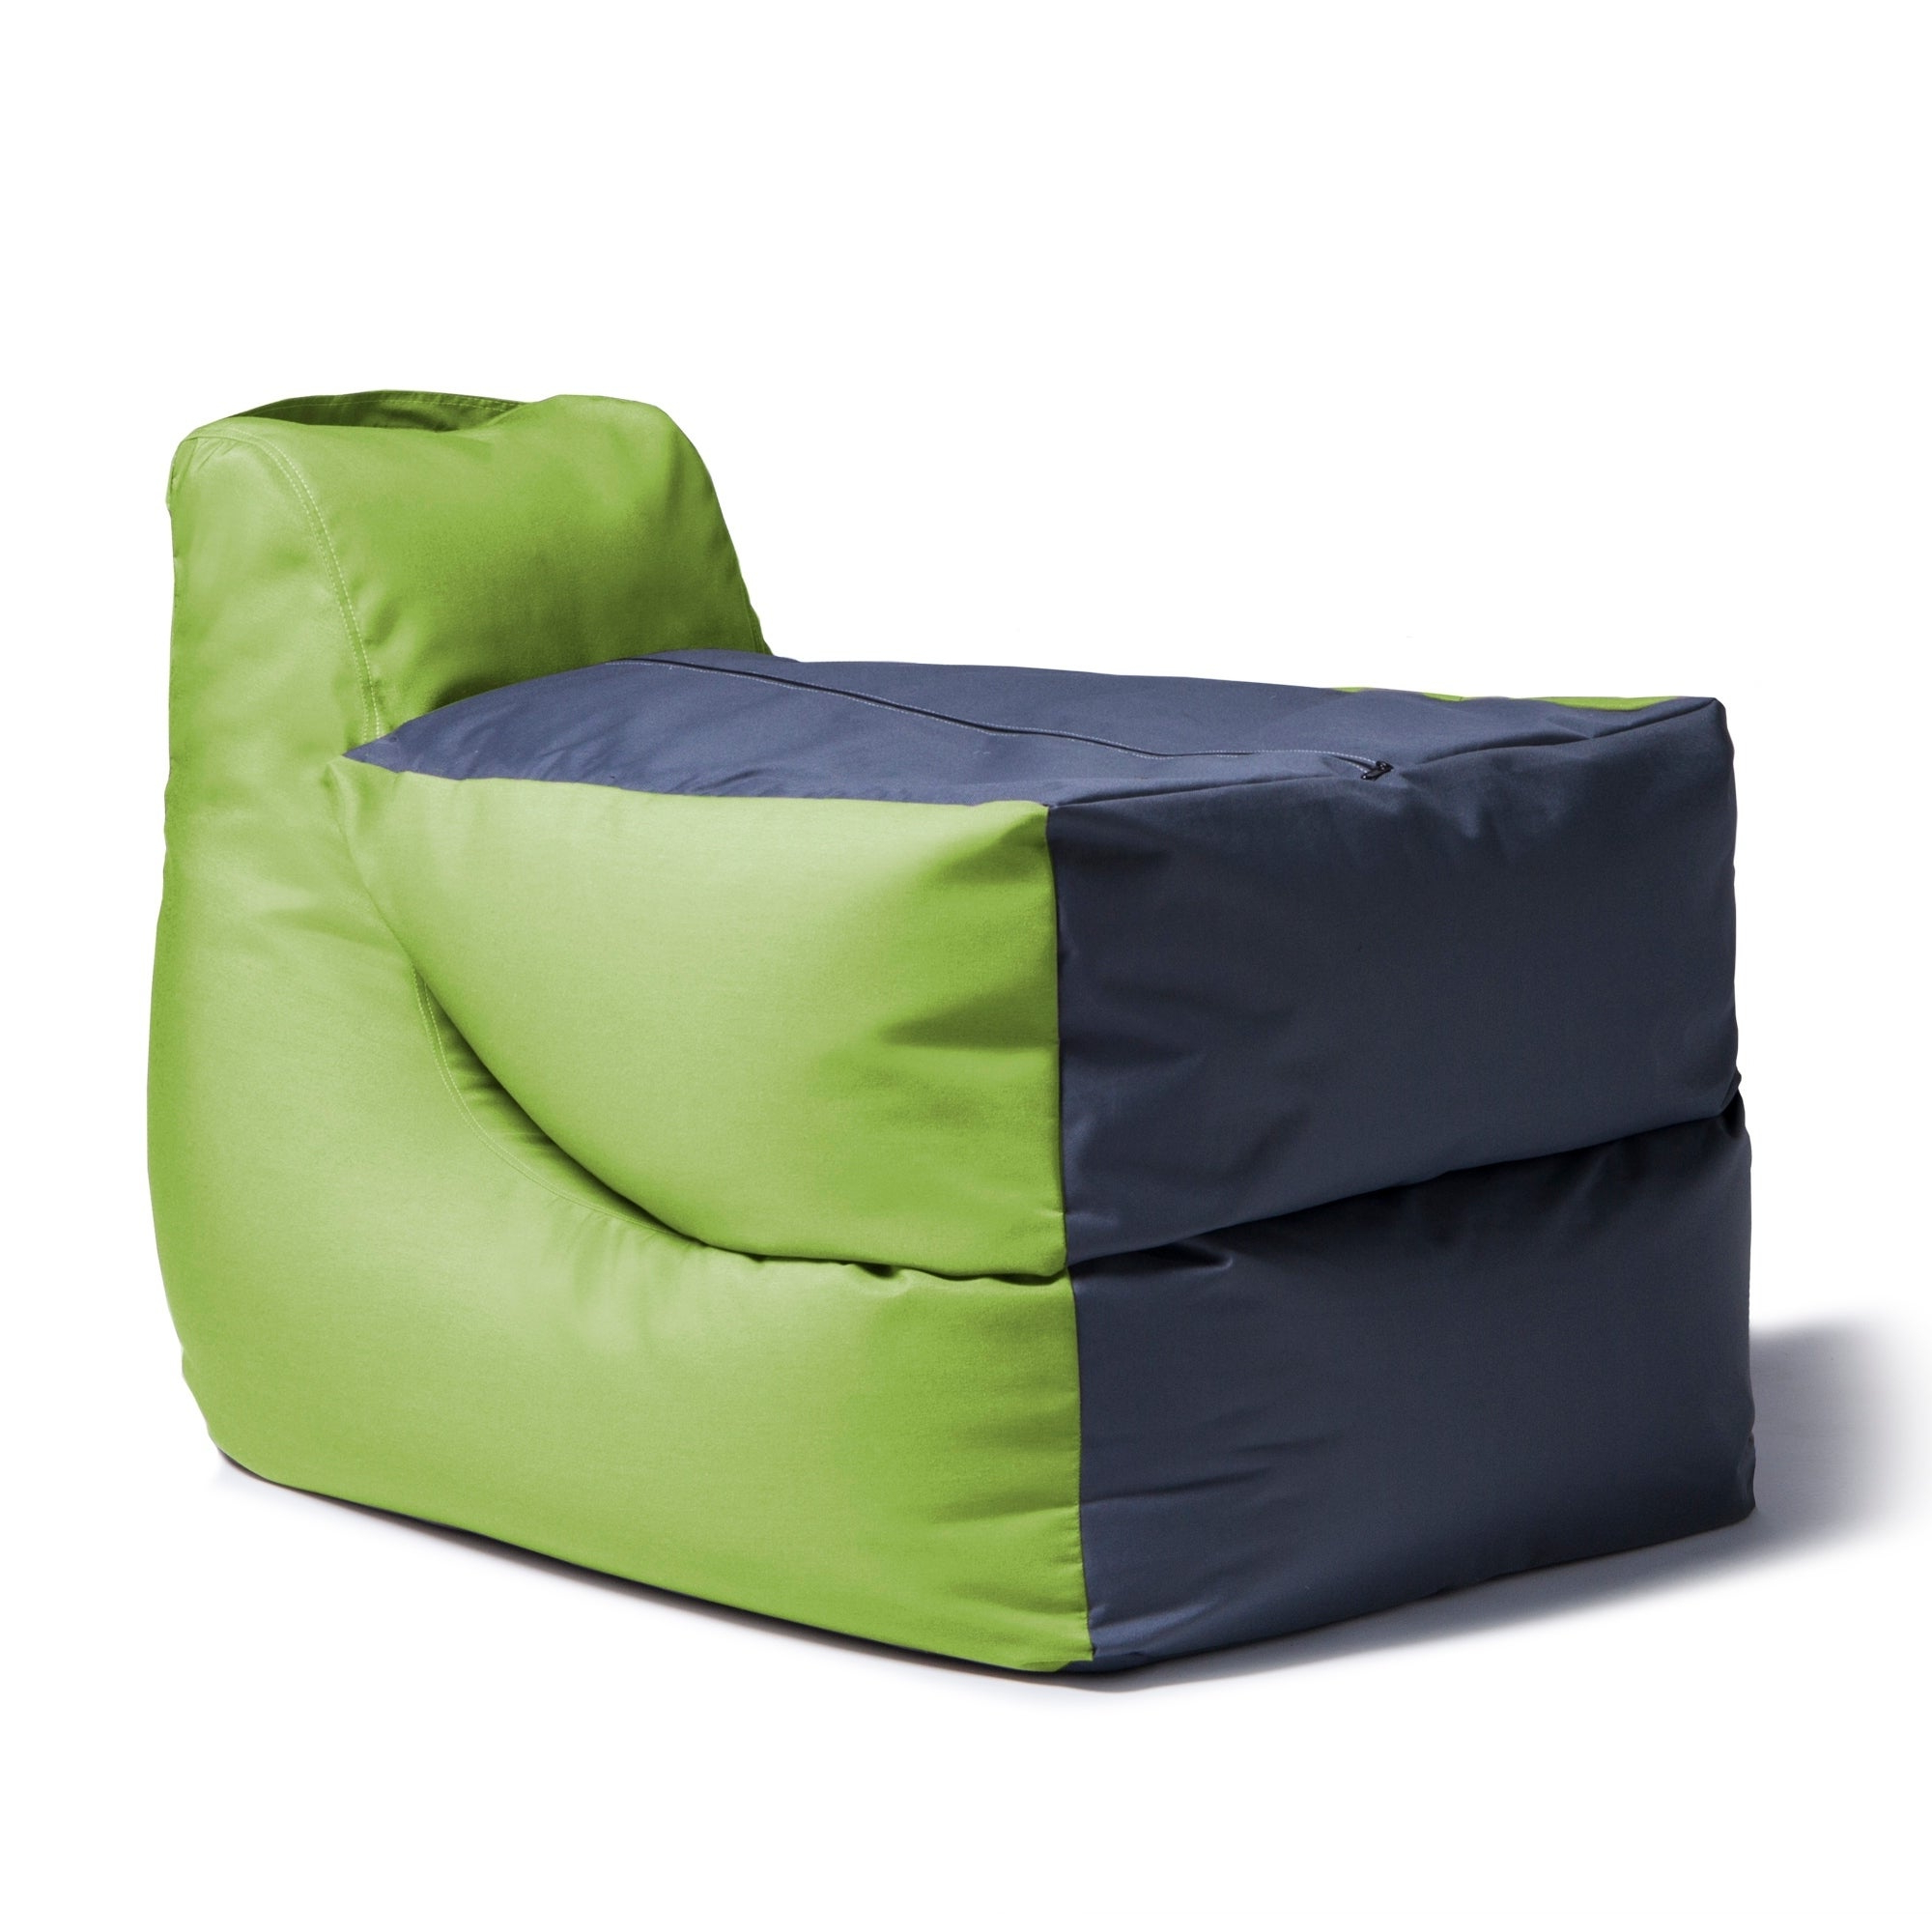 Famous Patio Bean Bag Chaise Lounges Intended For Jaxx Prado Patio Bean Bag Chaise Lounge (View 21 of 25)